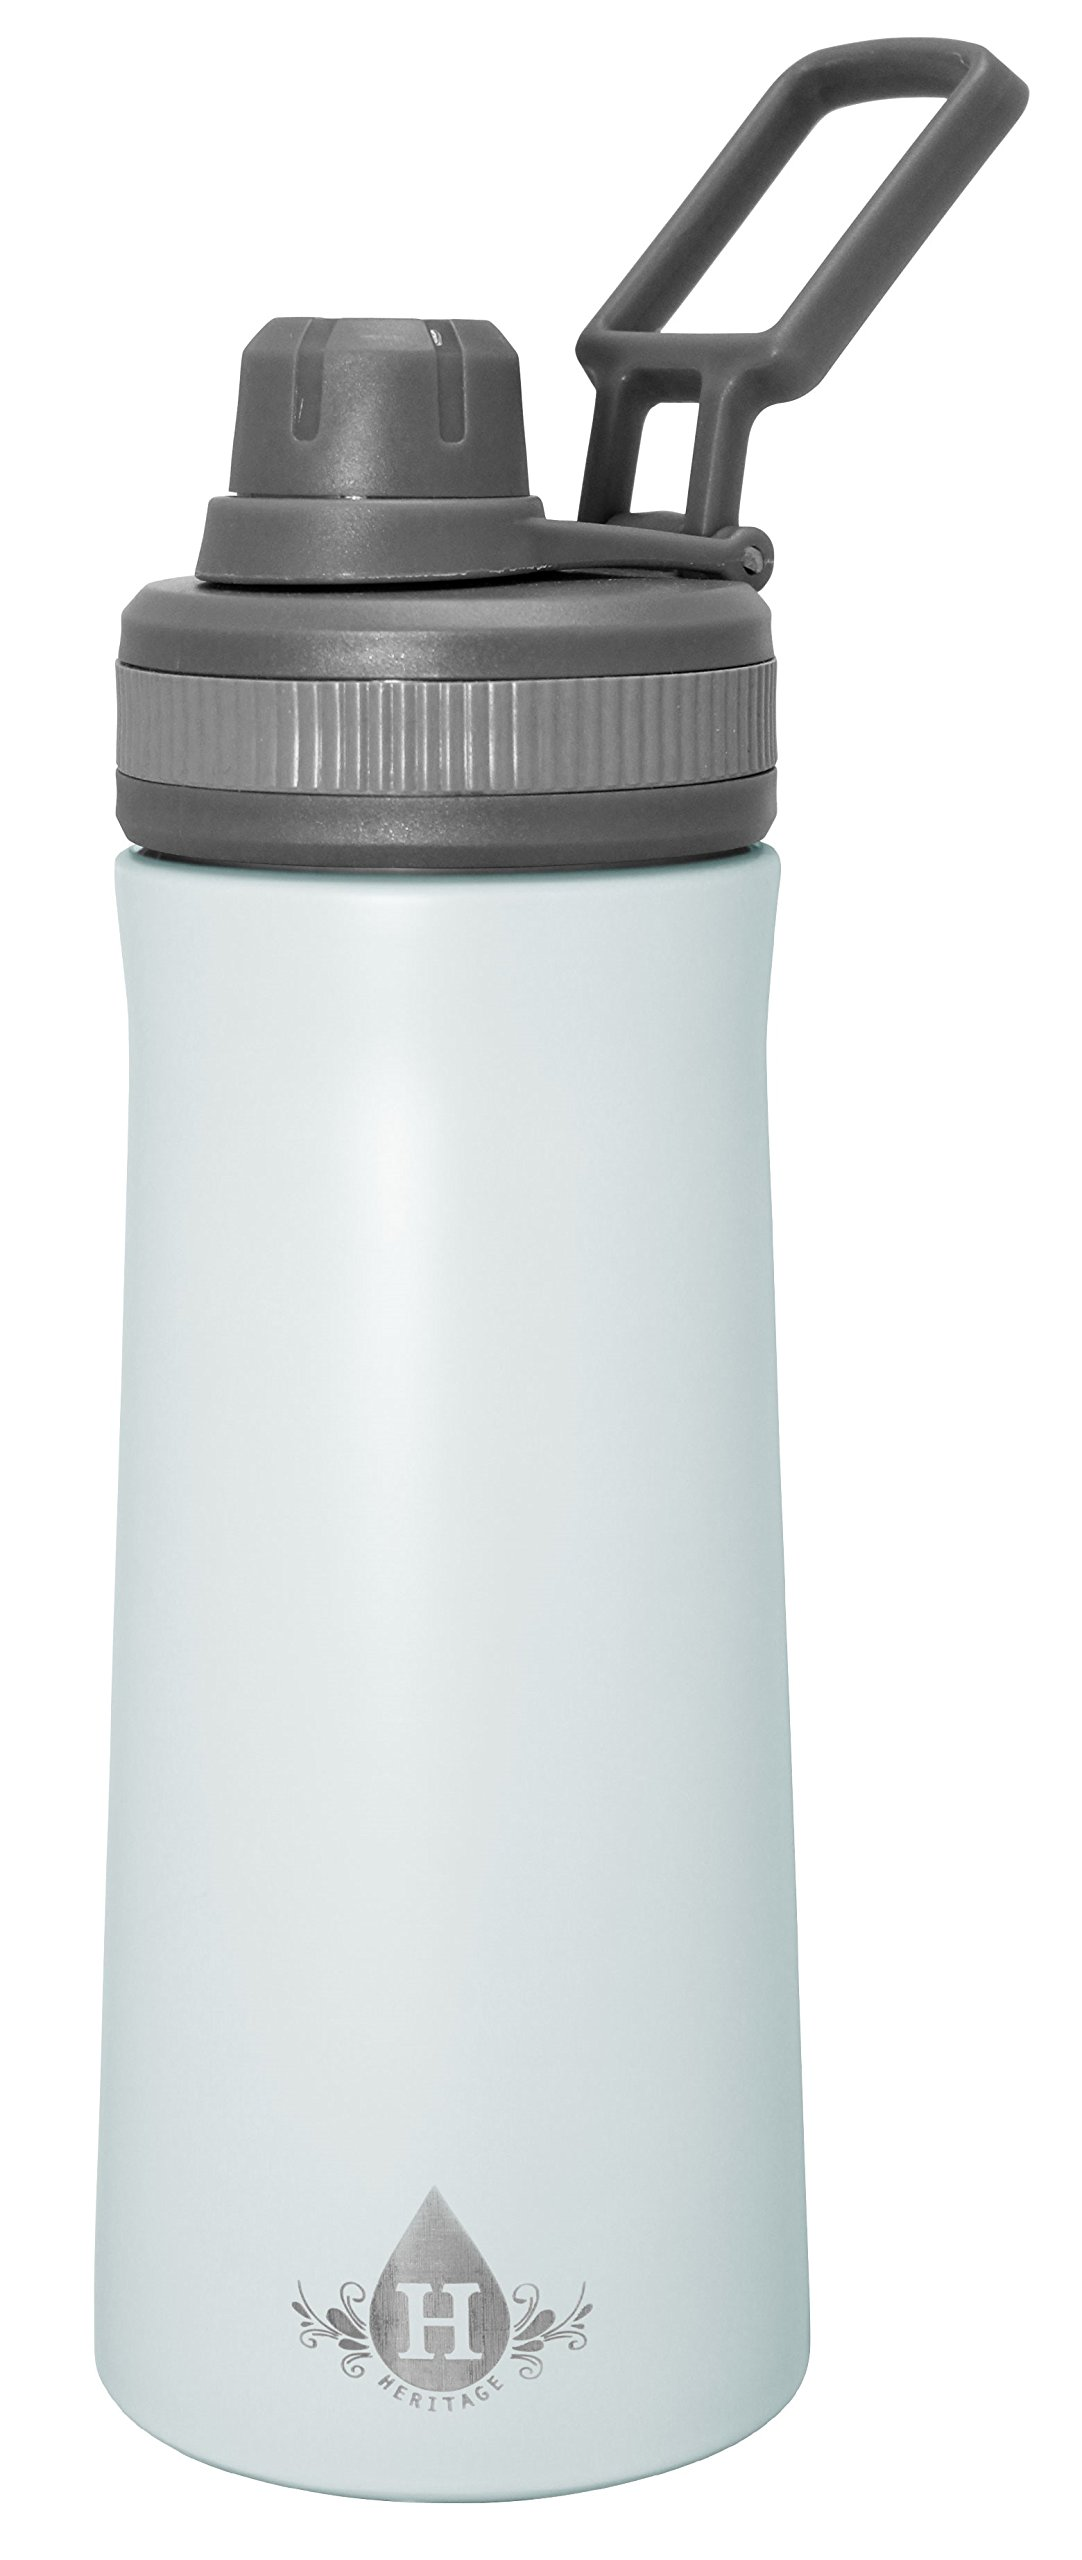 Gourmet Home Products 187449 Double Wall Stainless Steel Vacuum Insulated Water Bottle, 34 oz, Spa Blue